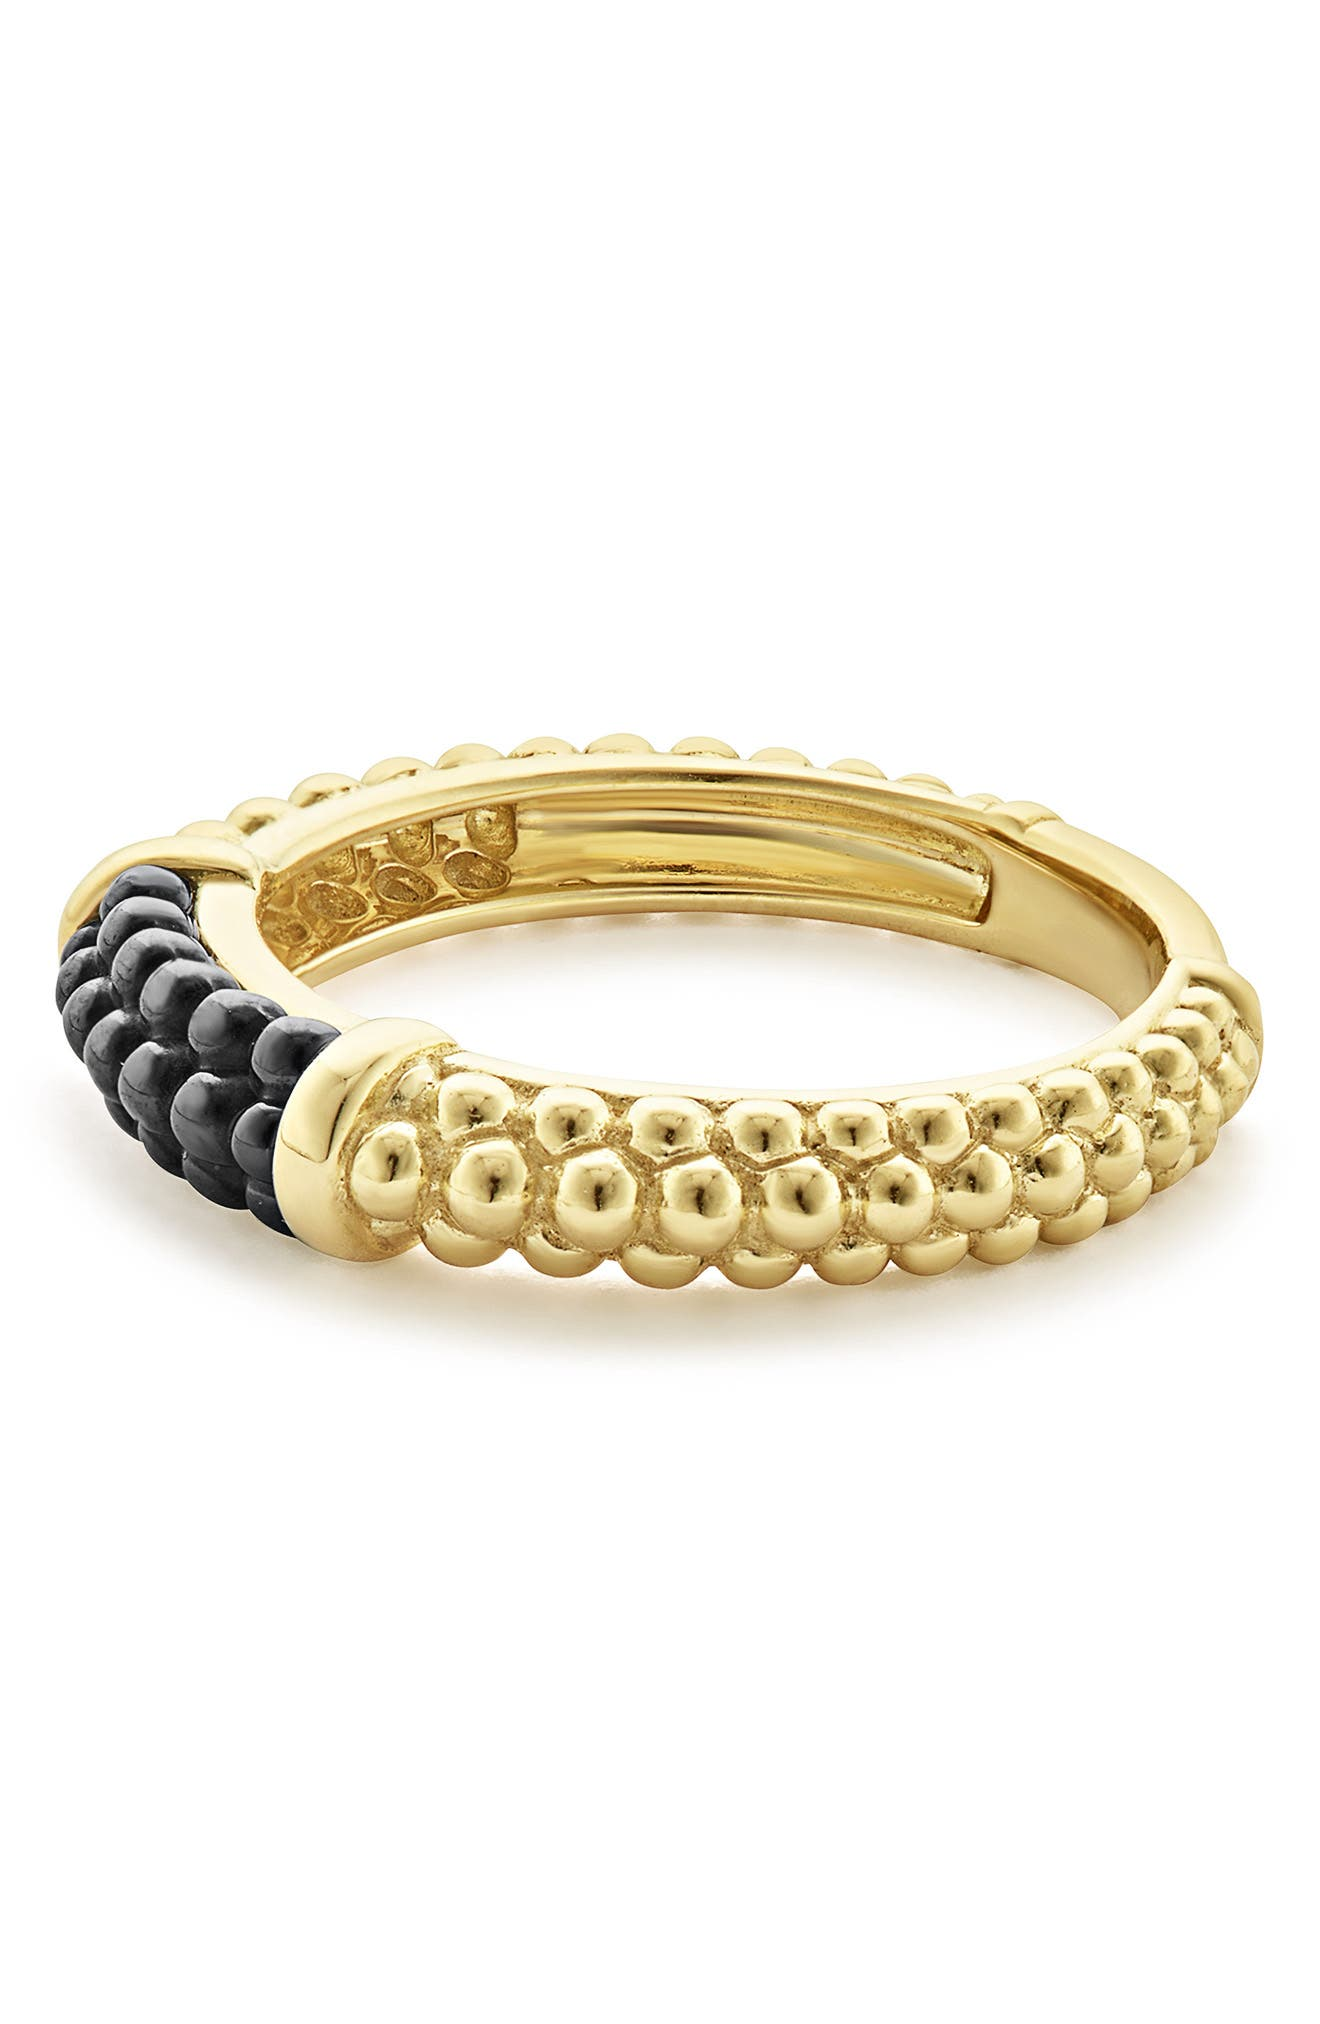 Gold & Black Caviar Stacking Ring,                             Alternate thumbnail 3, color,                             GOLD